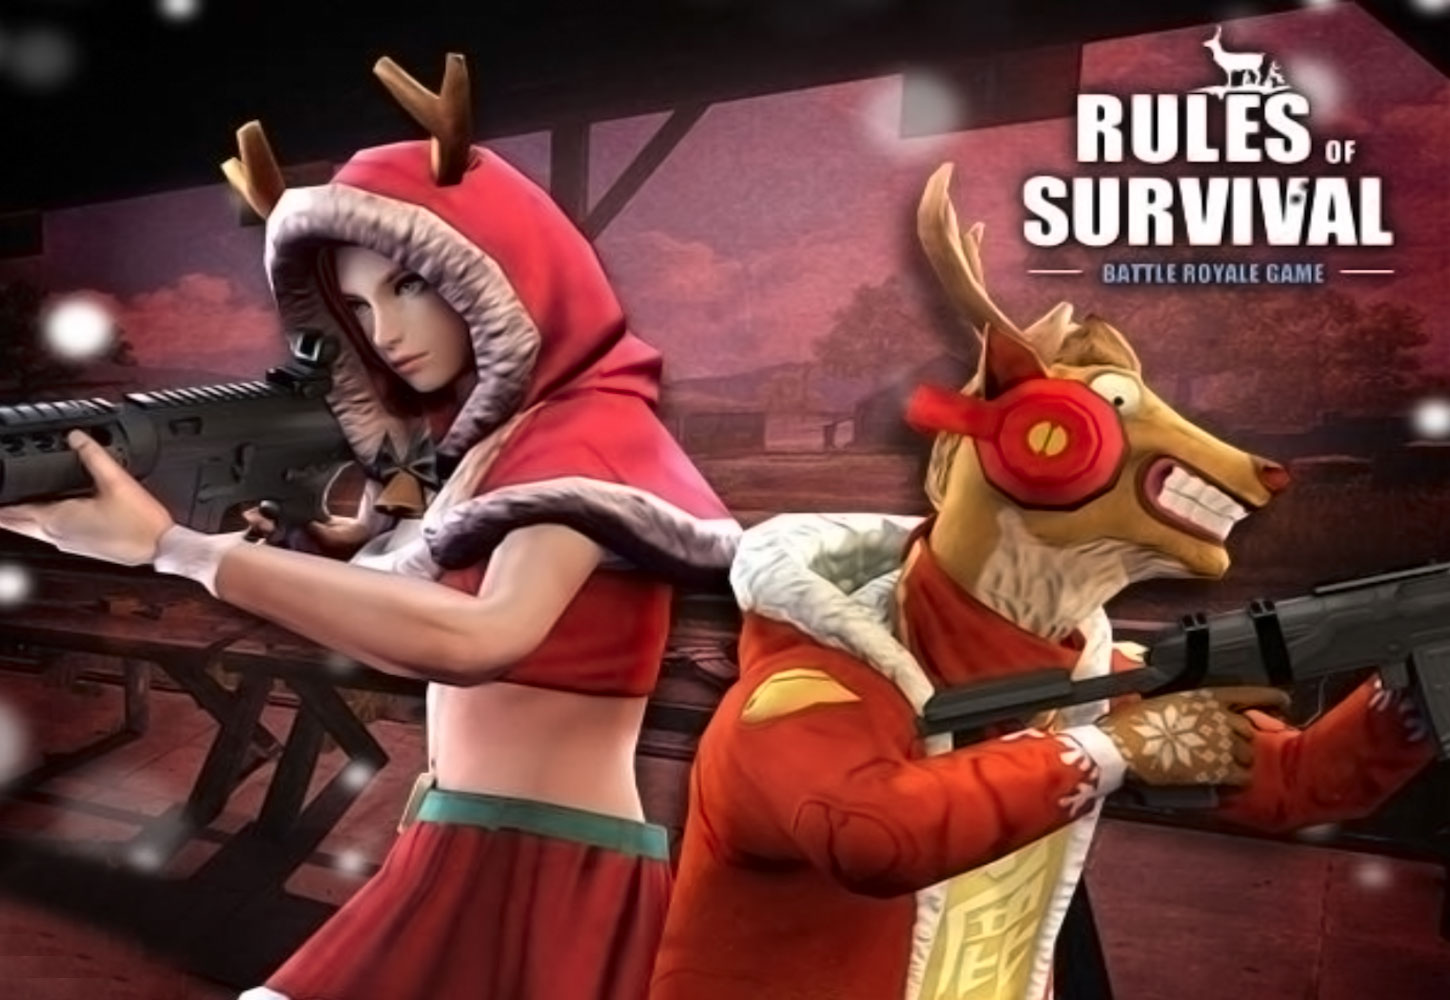 Rules of Survival Christmas Upates